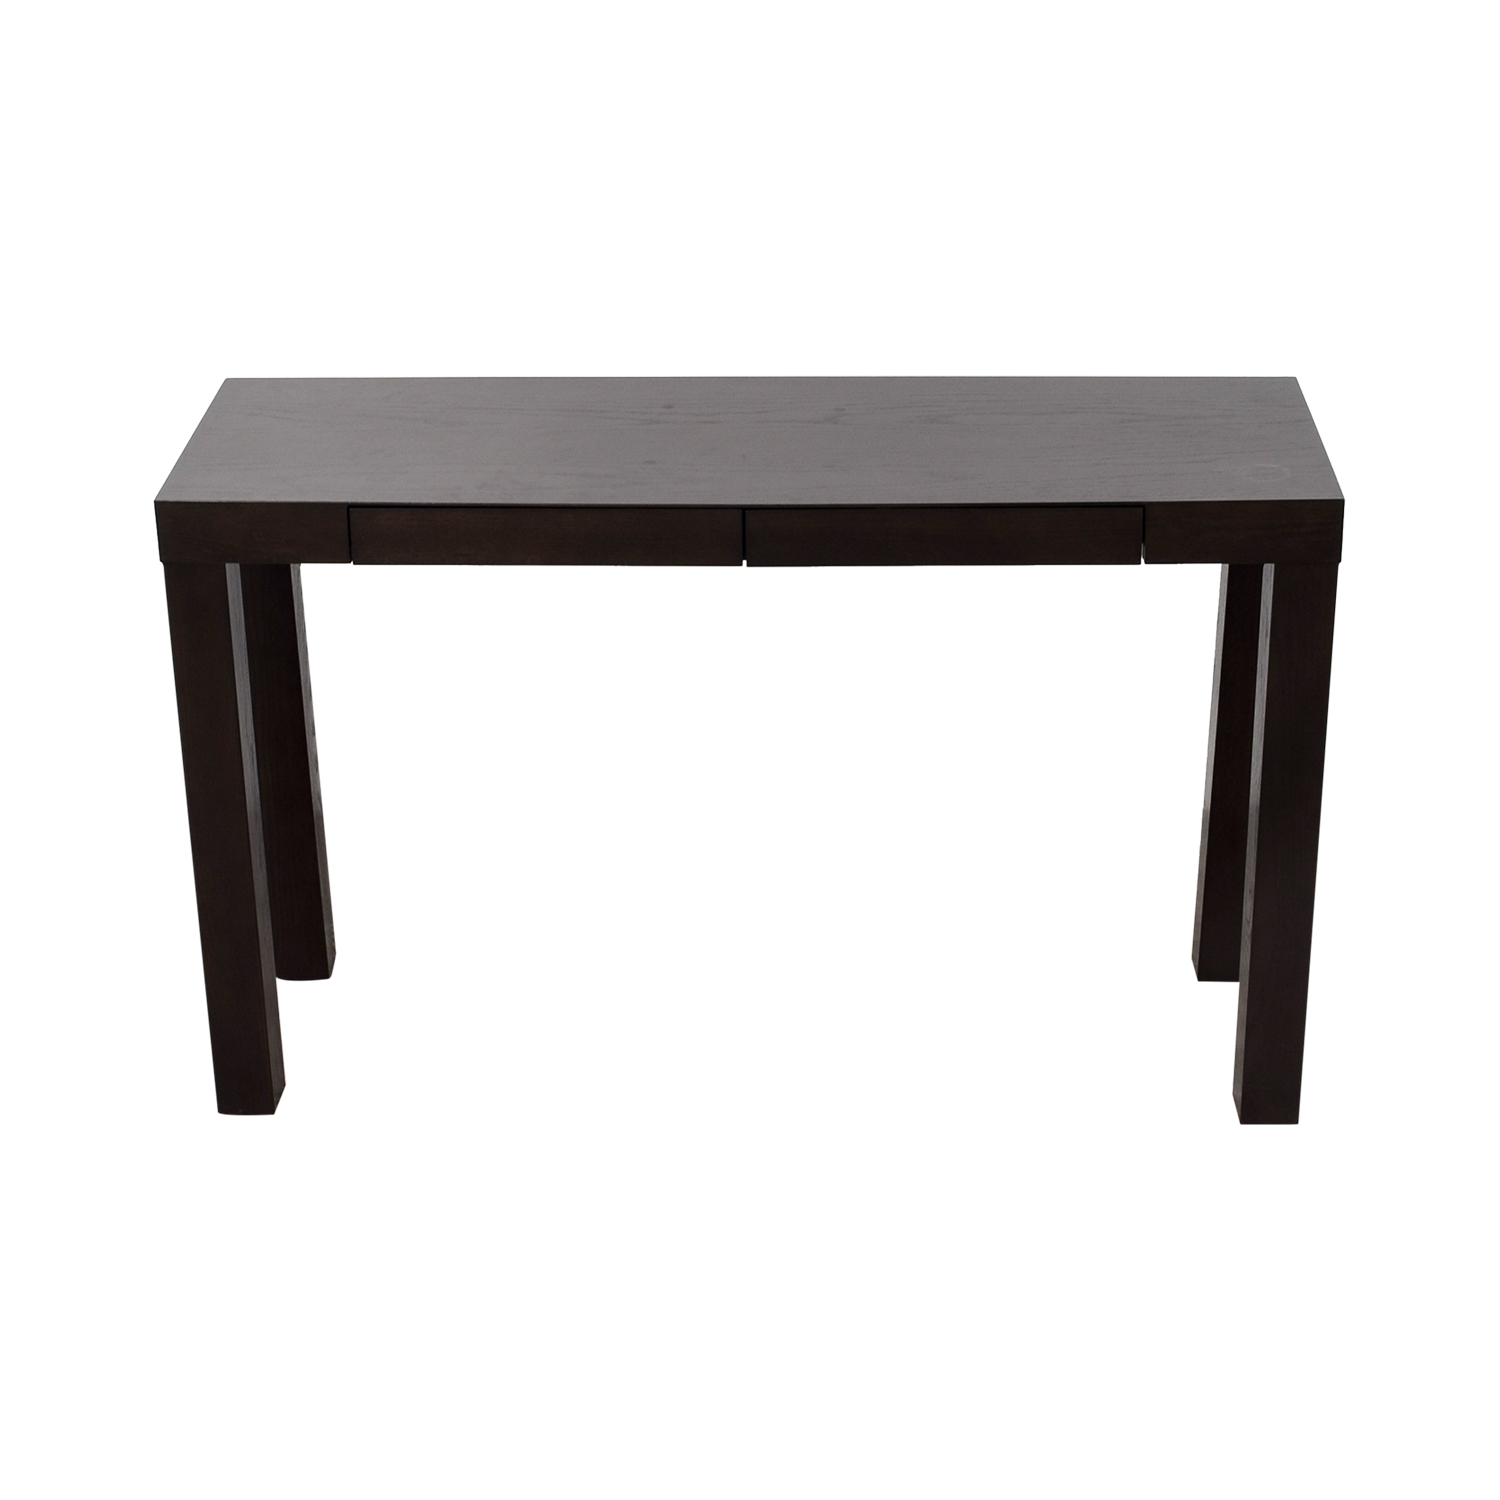 81% Off – Crate & Barrel Crate & Barrel Yukon Wood And Metal Console Throughout Yukon Grey Console Tables (View 13 of 20)